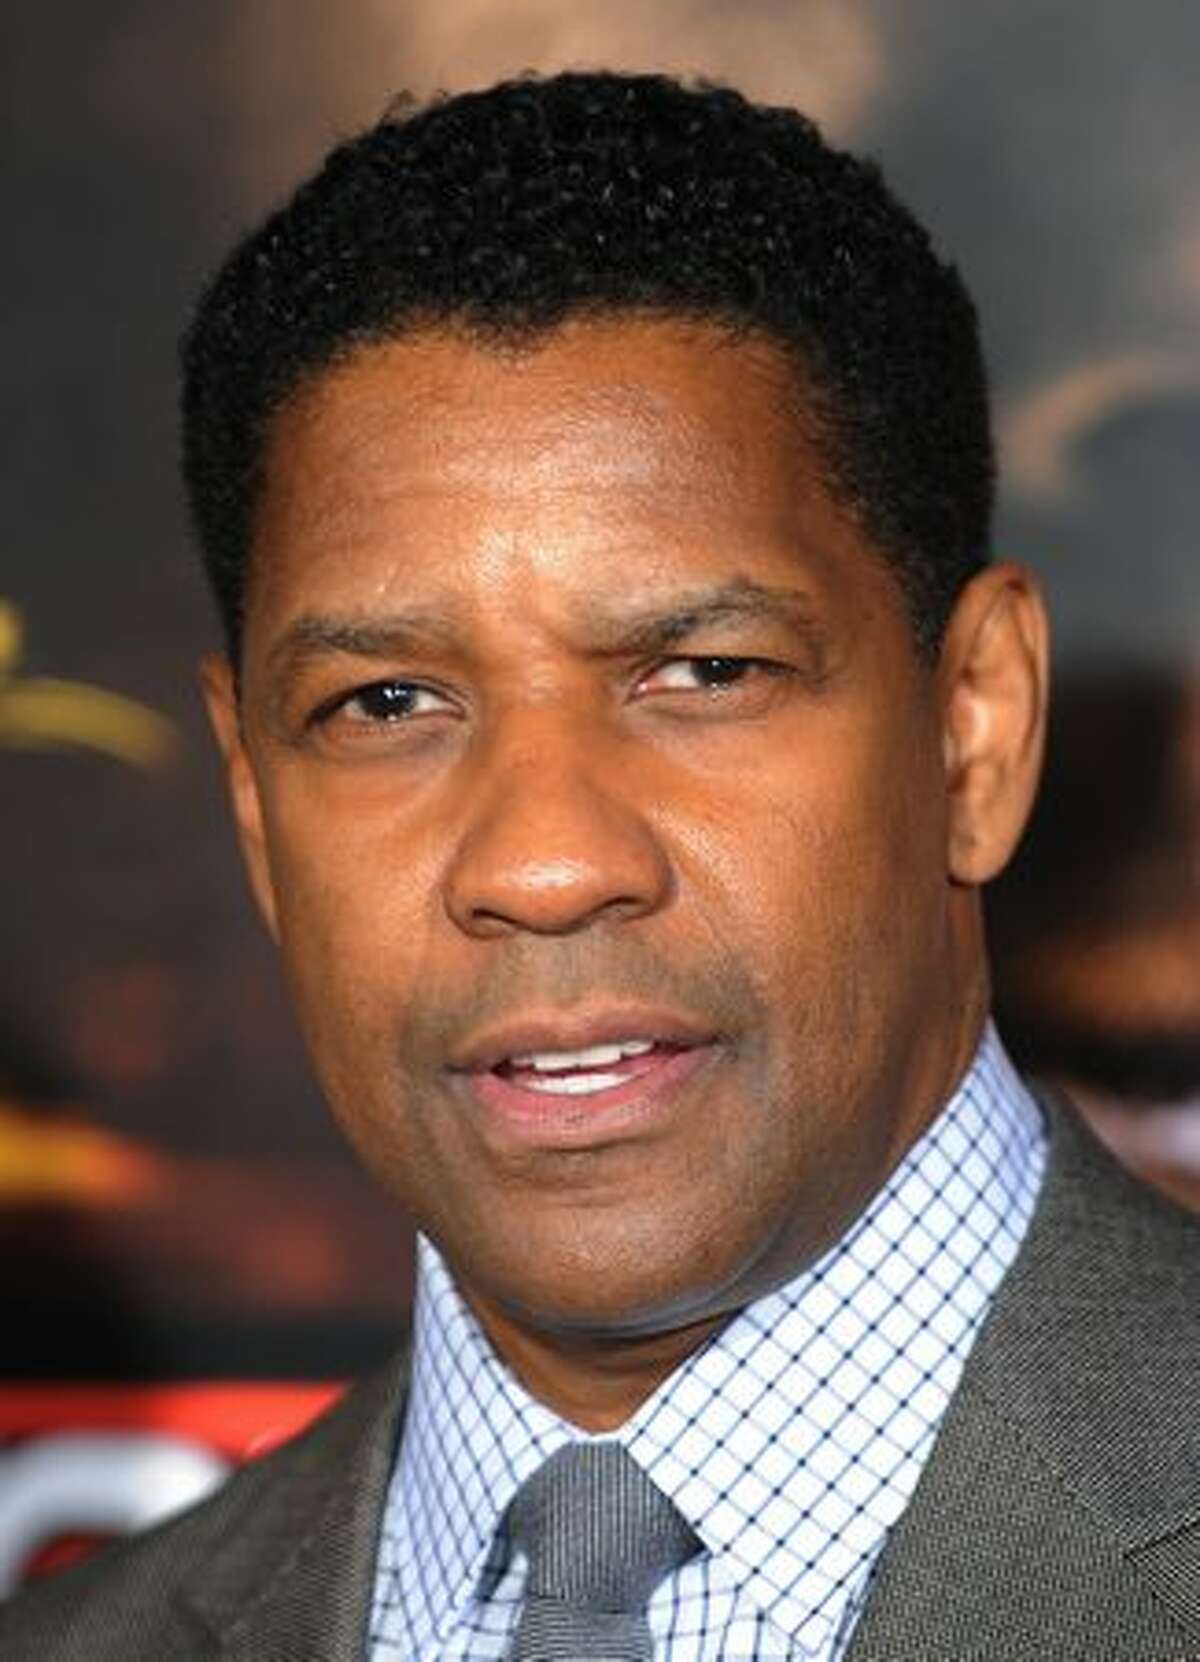 Actor Denzel Washington arrives on the red carpet for the premiere of the film